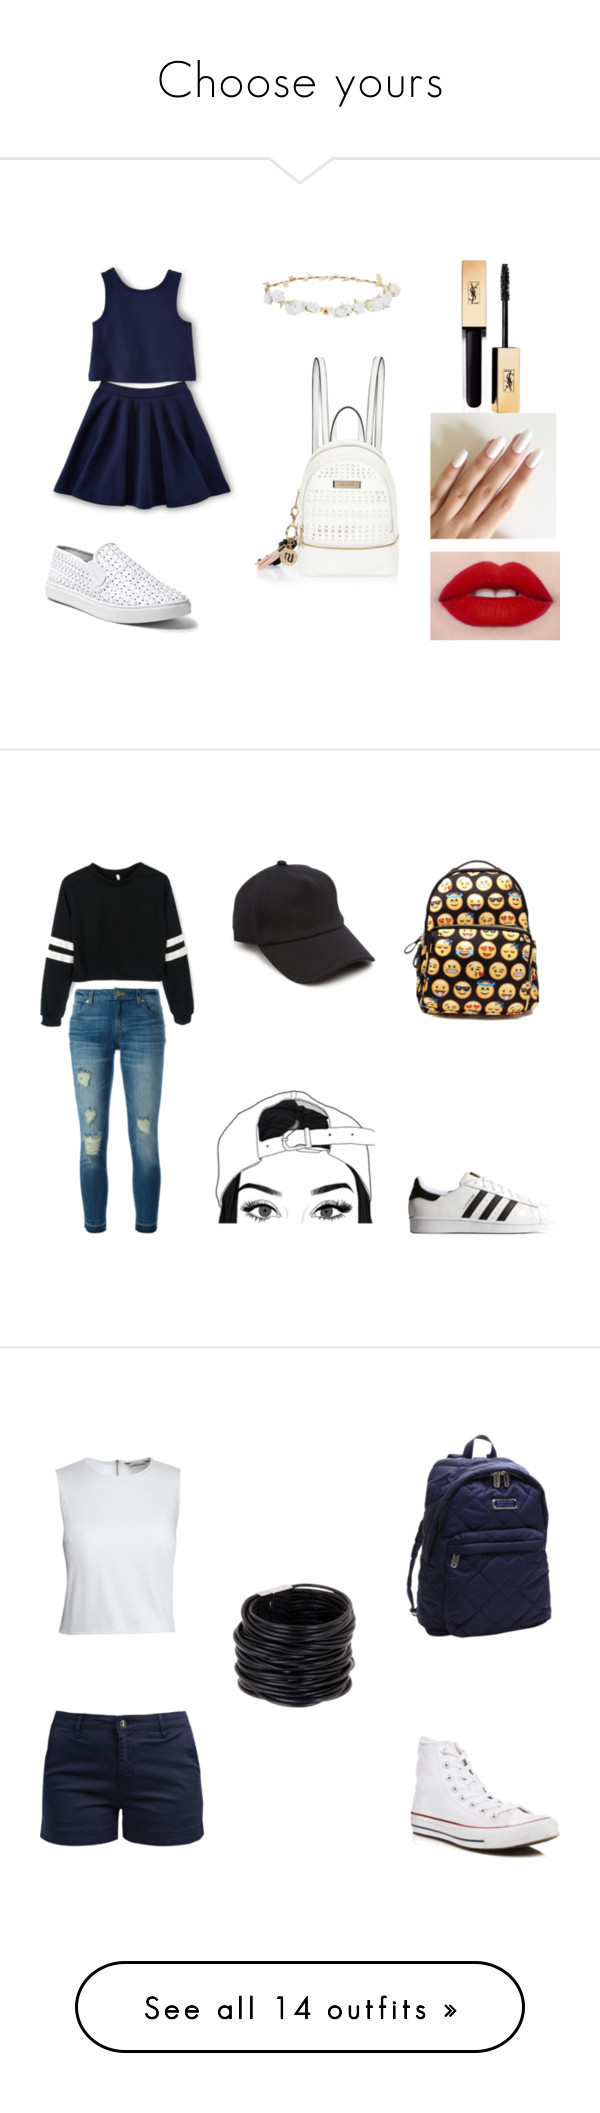 """""""Choose yours"""" by geovannadallas on Polyvore featuring moda, Steve Madden, River Island, Design Lab, MICHAEL Michael Kors, adidas Originals, rag & bone, Barbour, Converse e Canvas by Lands' End"""